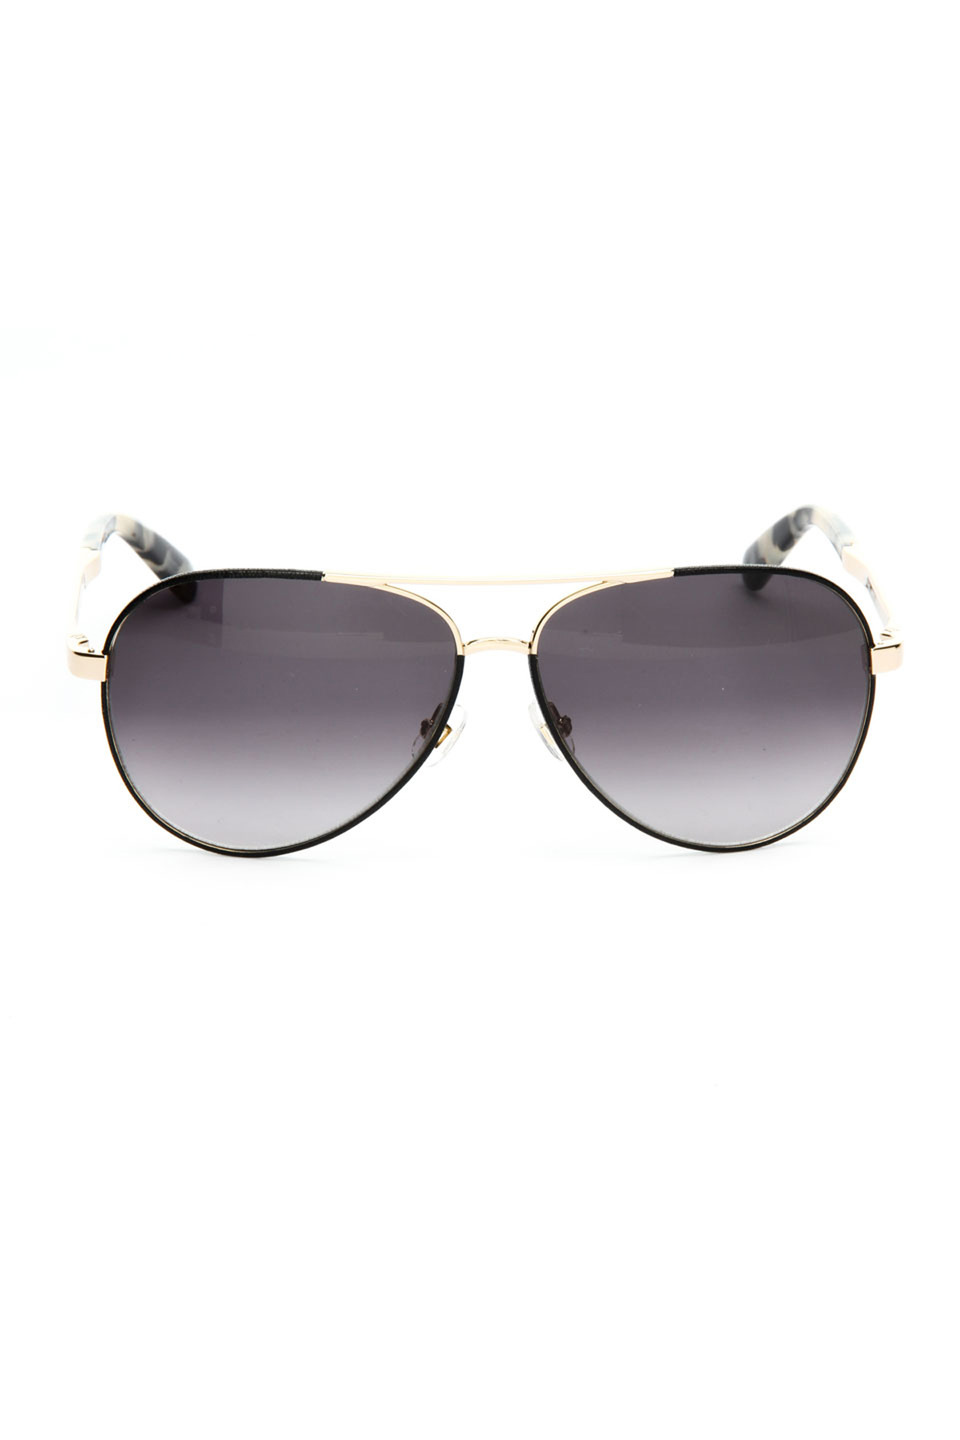 Kate Spade Ladies Sunglasses in Black and Gold